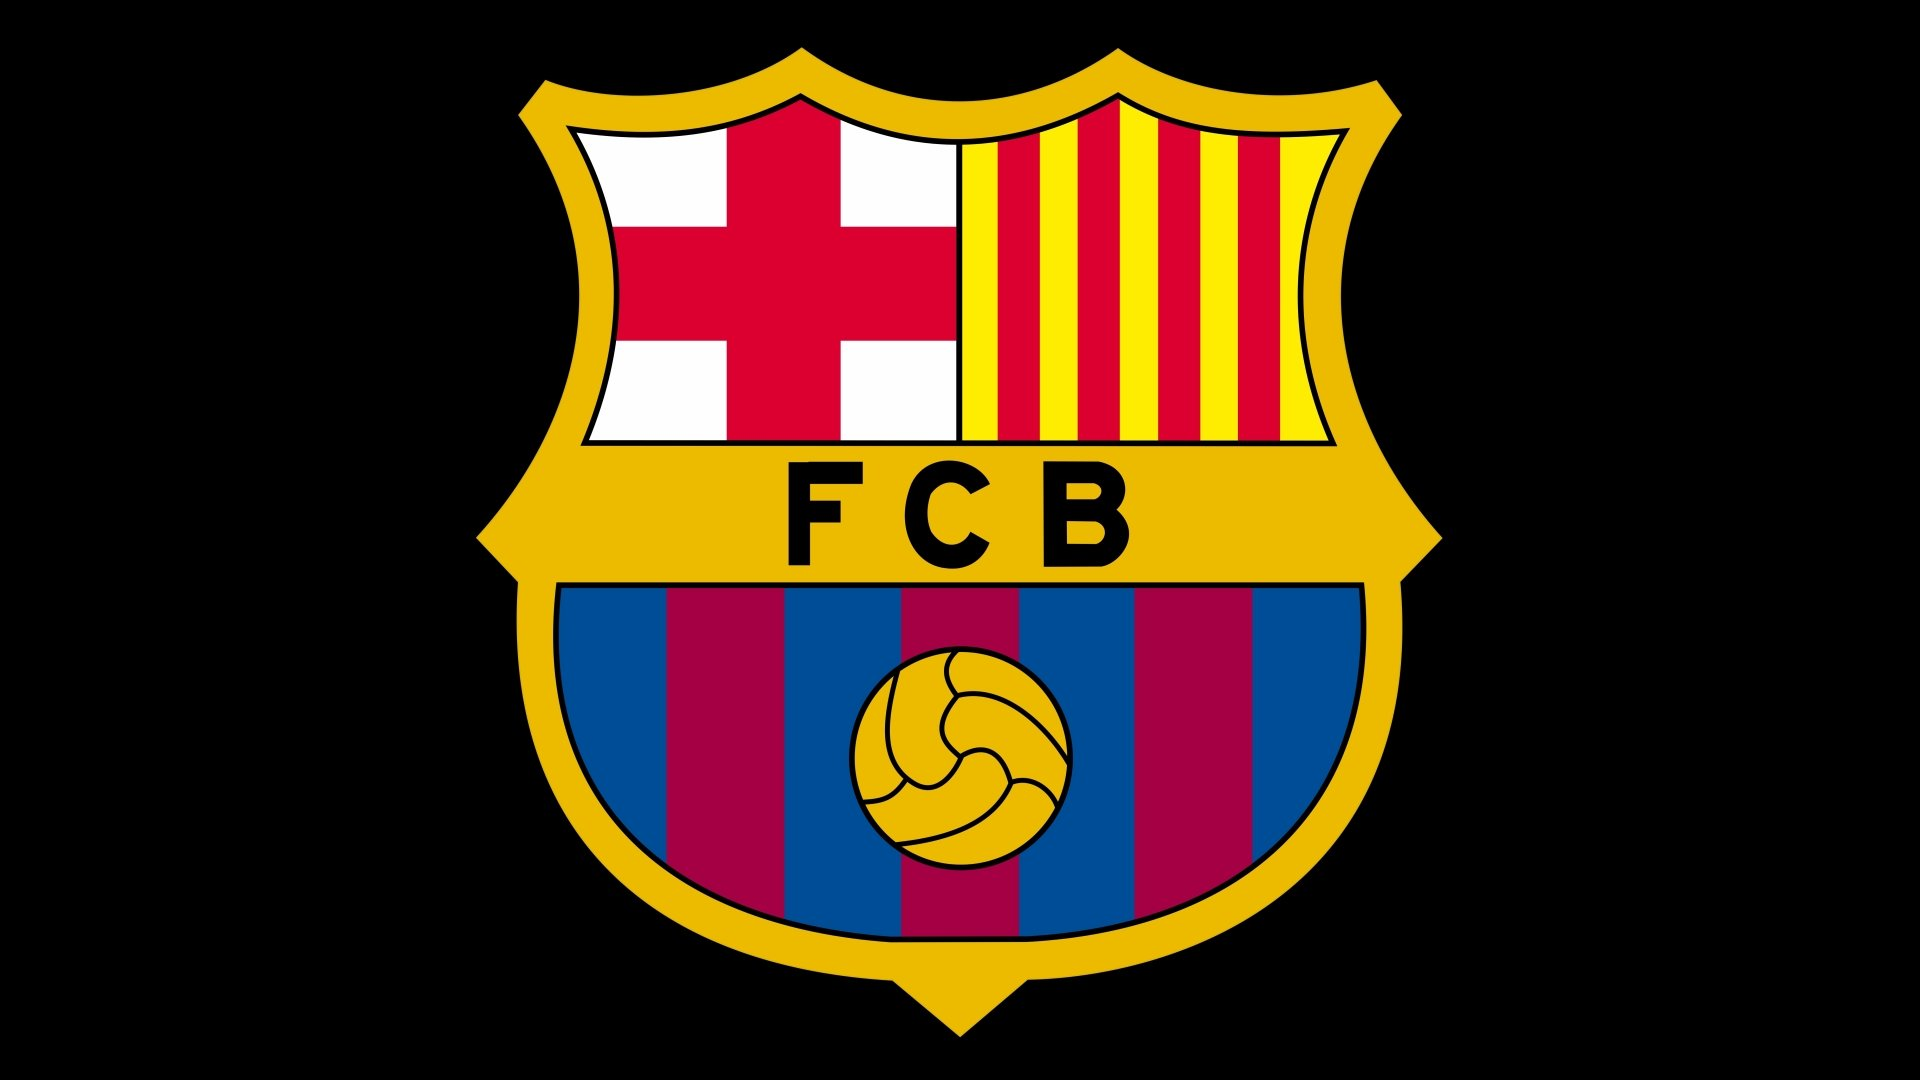 23 4k Ultra Hd Fc Barcelona Wallpapers Background Images